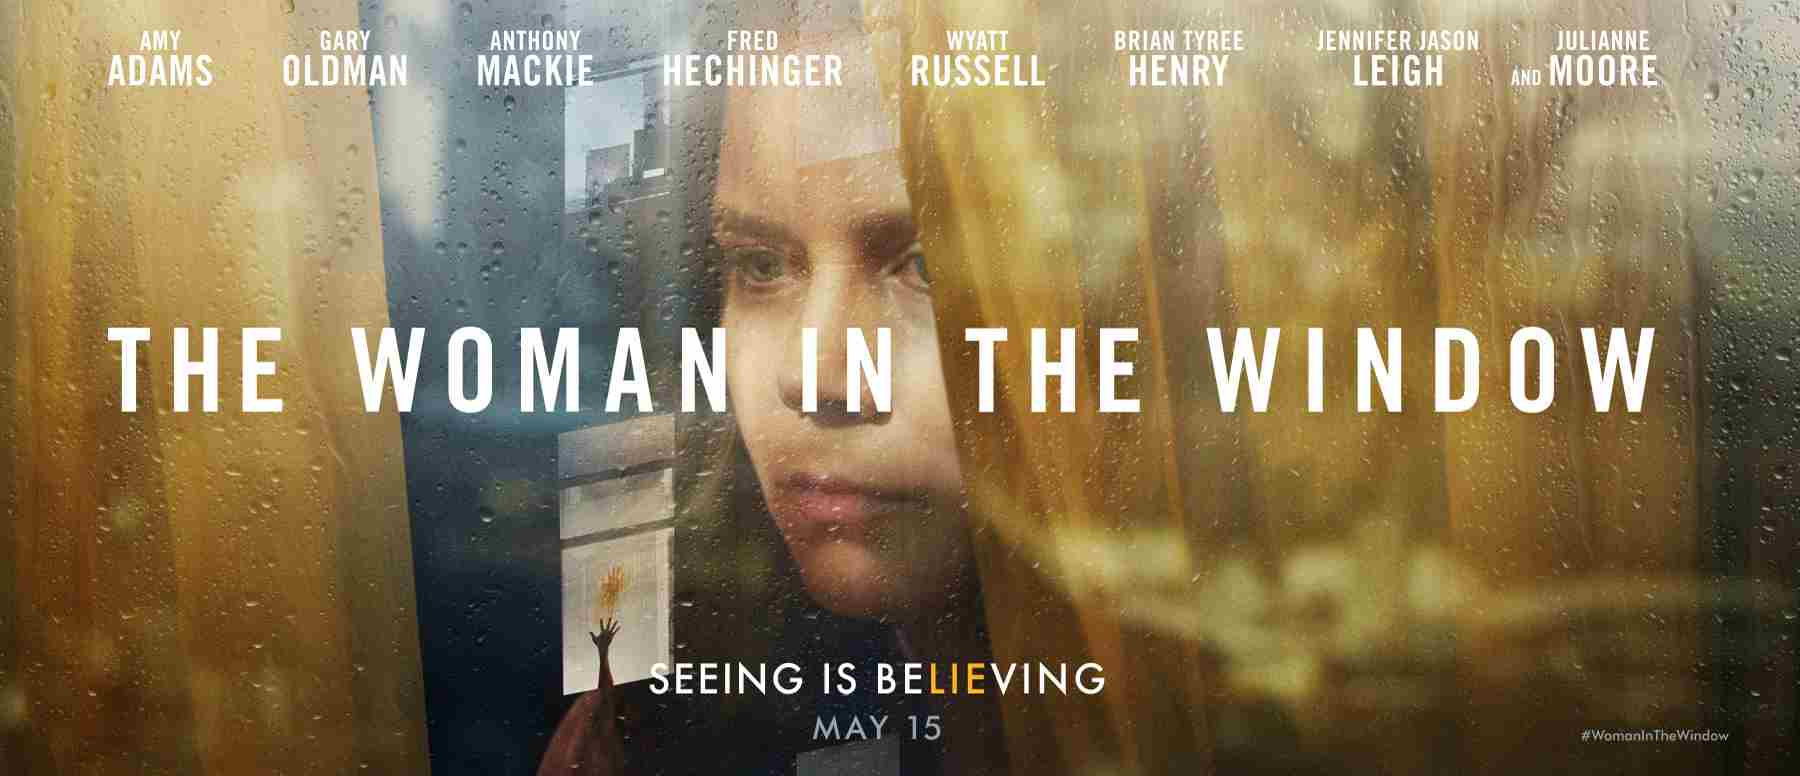 The Woman in The Window filme din 2020